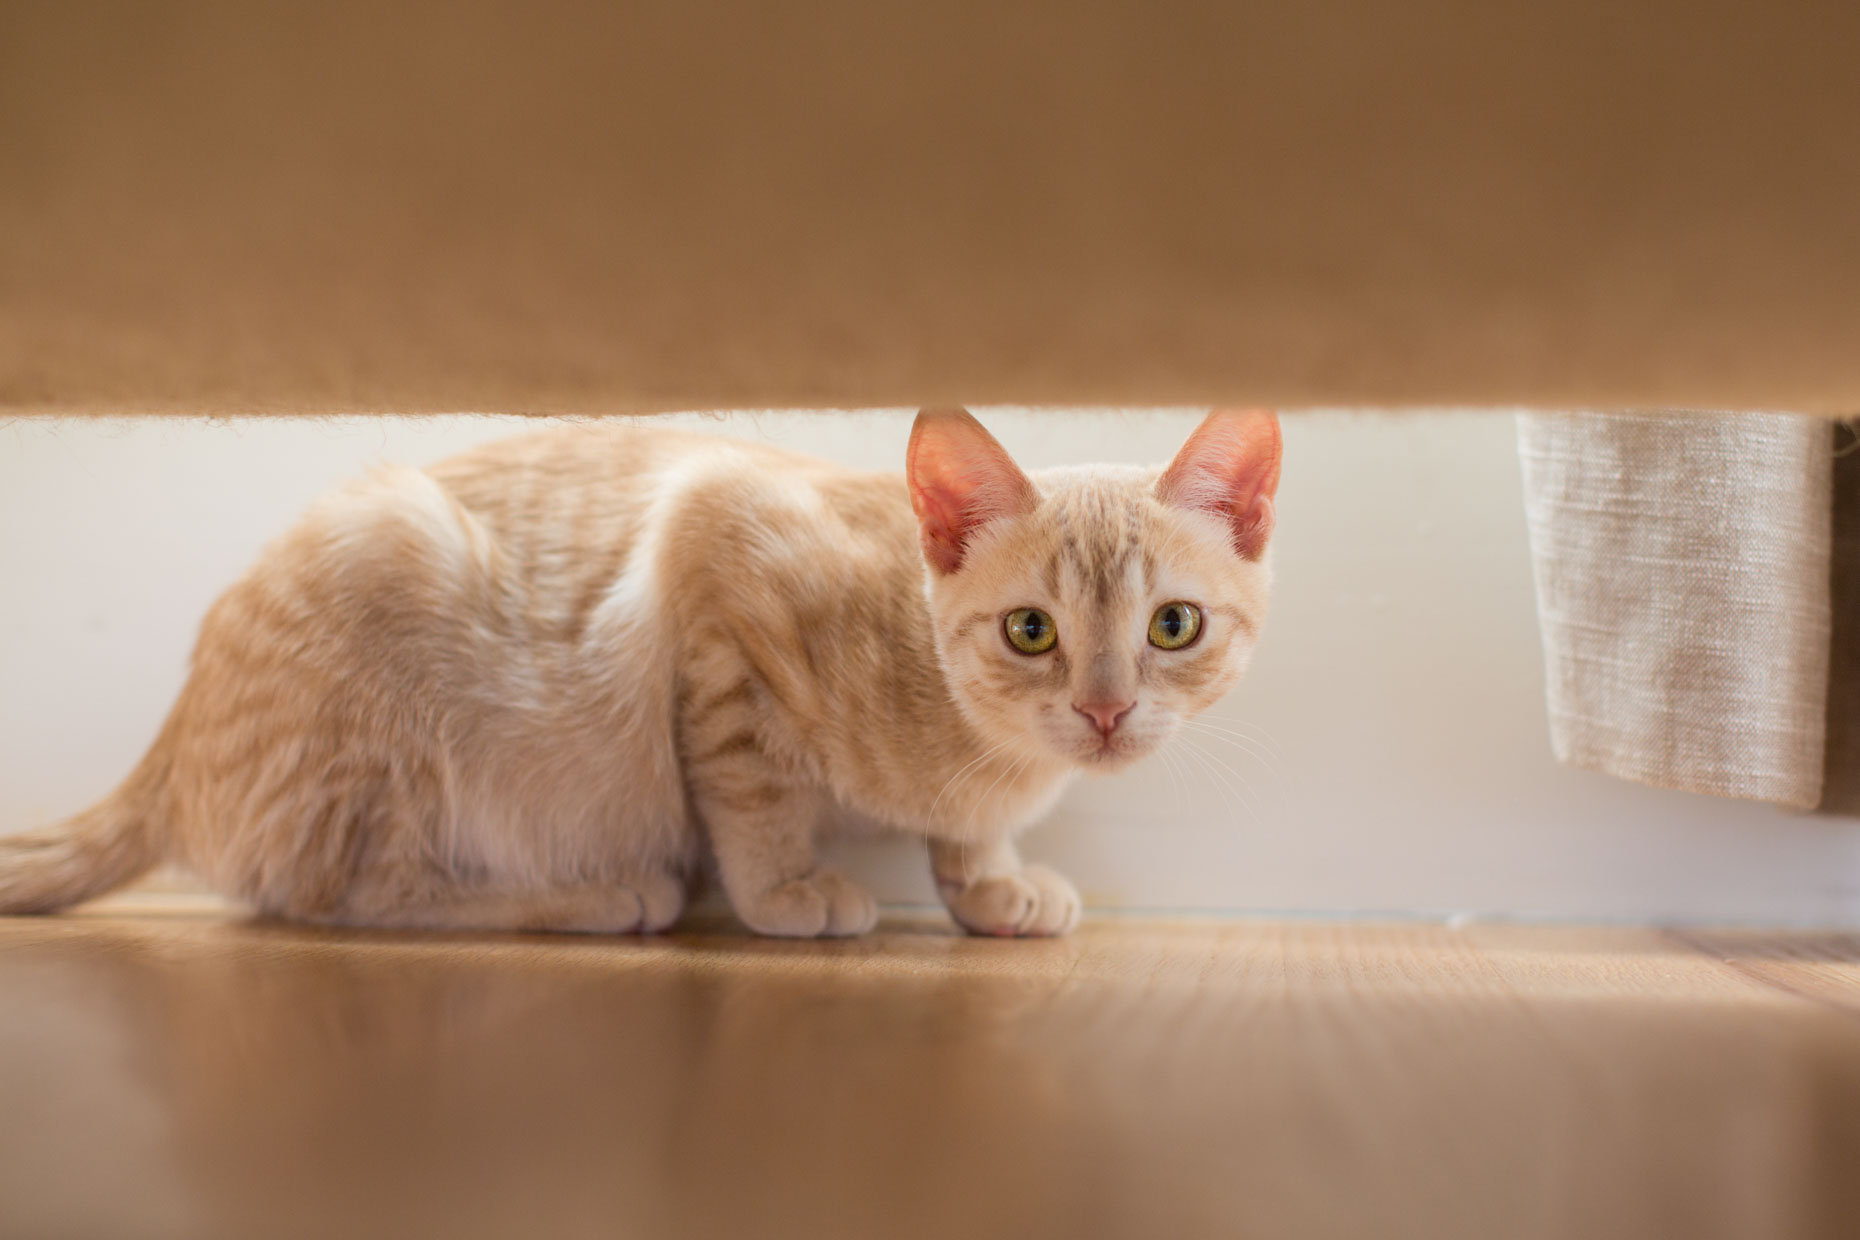 Cat and Pet Photography | Kitten Under Sofa by Mark Rogers